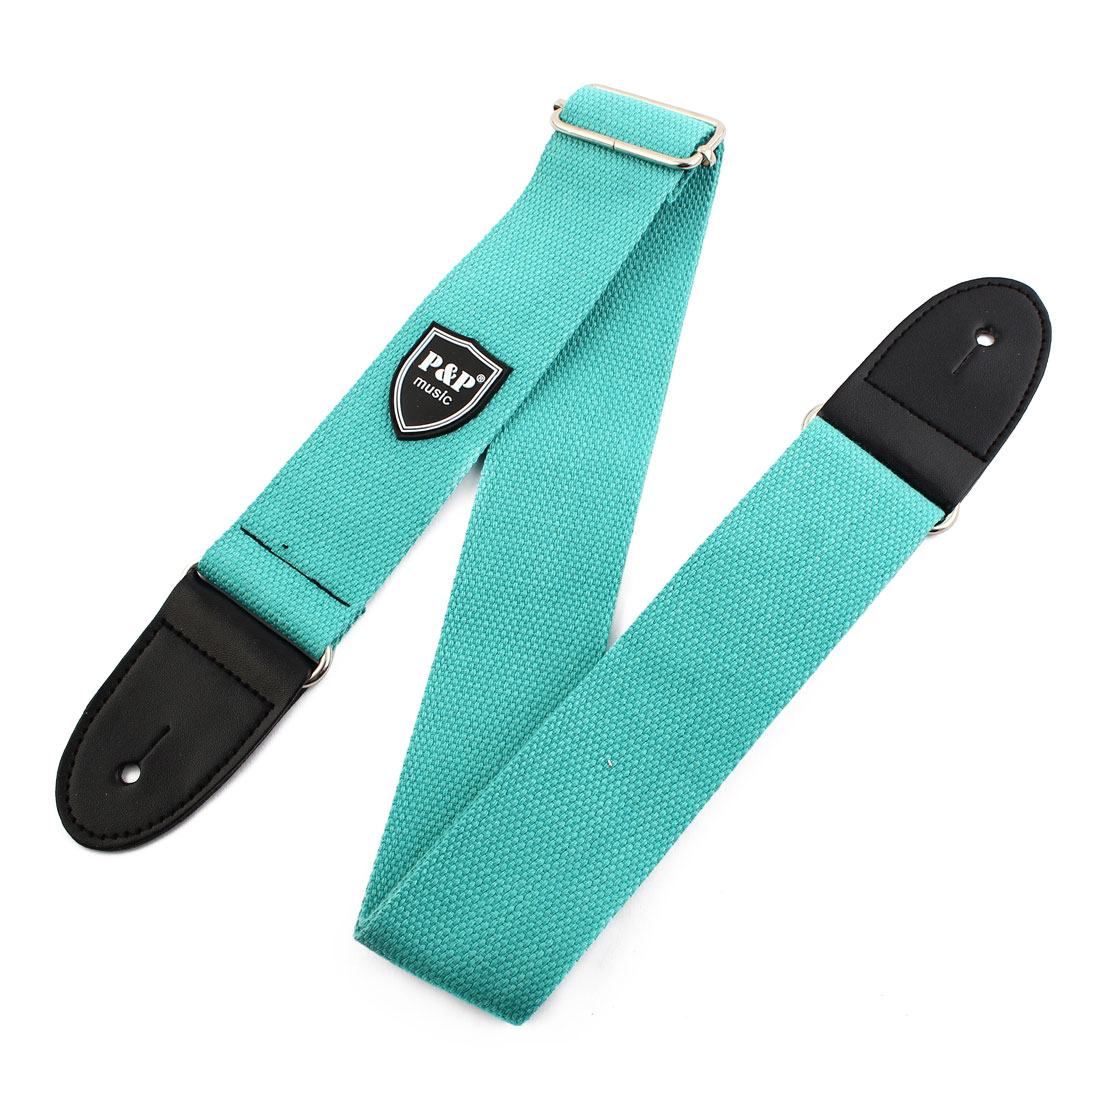 Nylon Braided Bass Belt Adjustable Electric Guitar Strap Teal 80-140cm Length